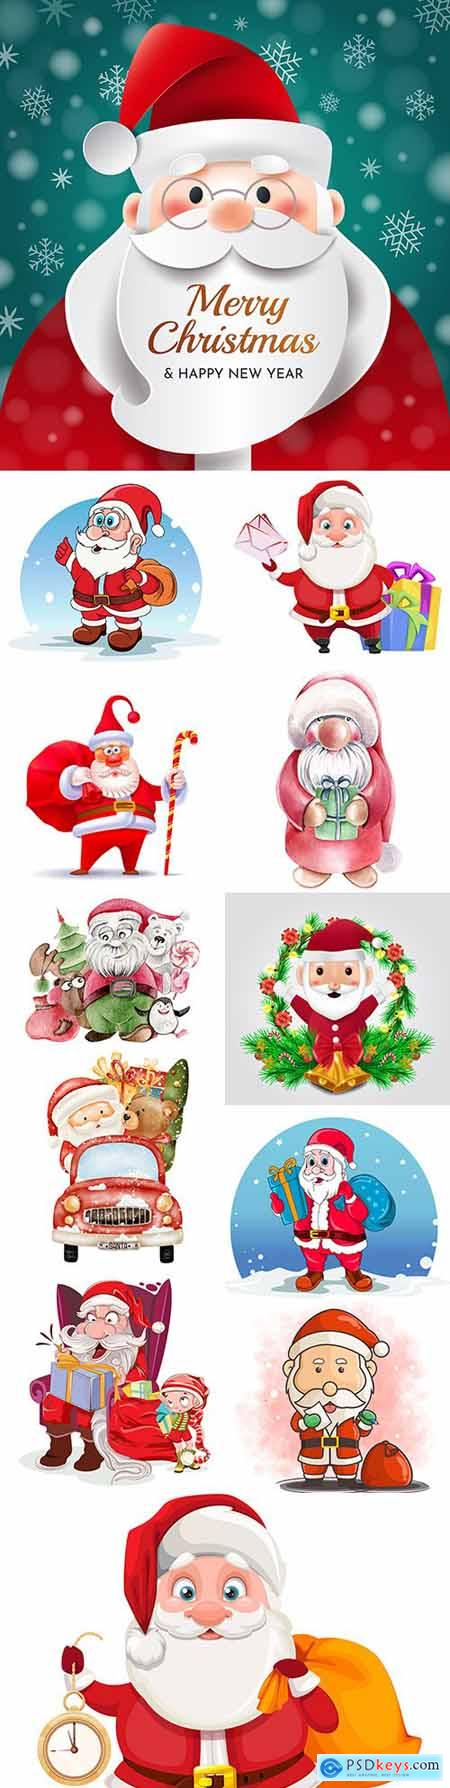 Santa Claus funny character with Christmas gift illustrations